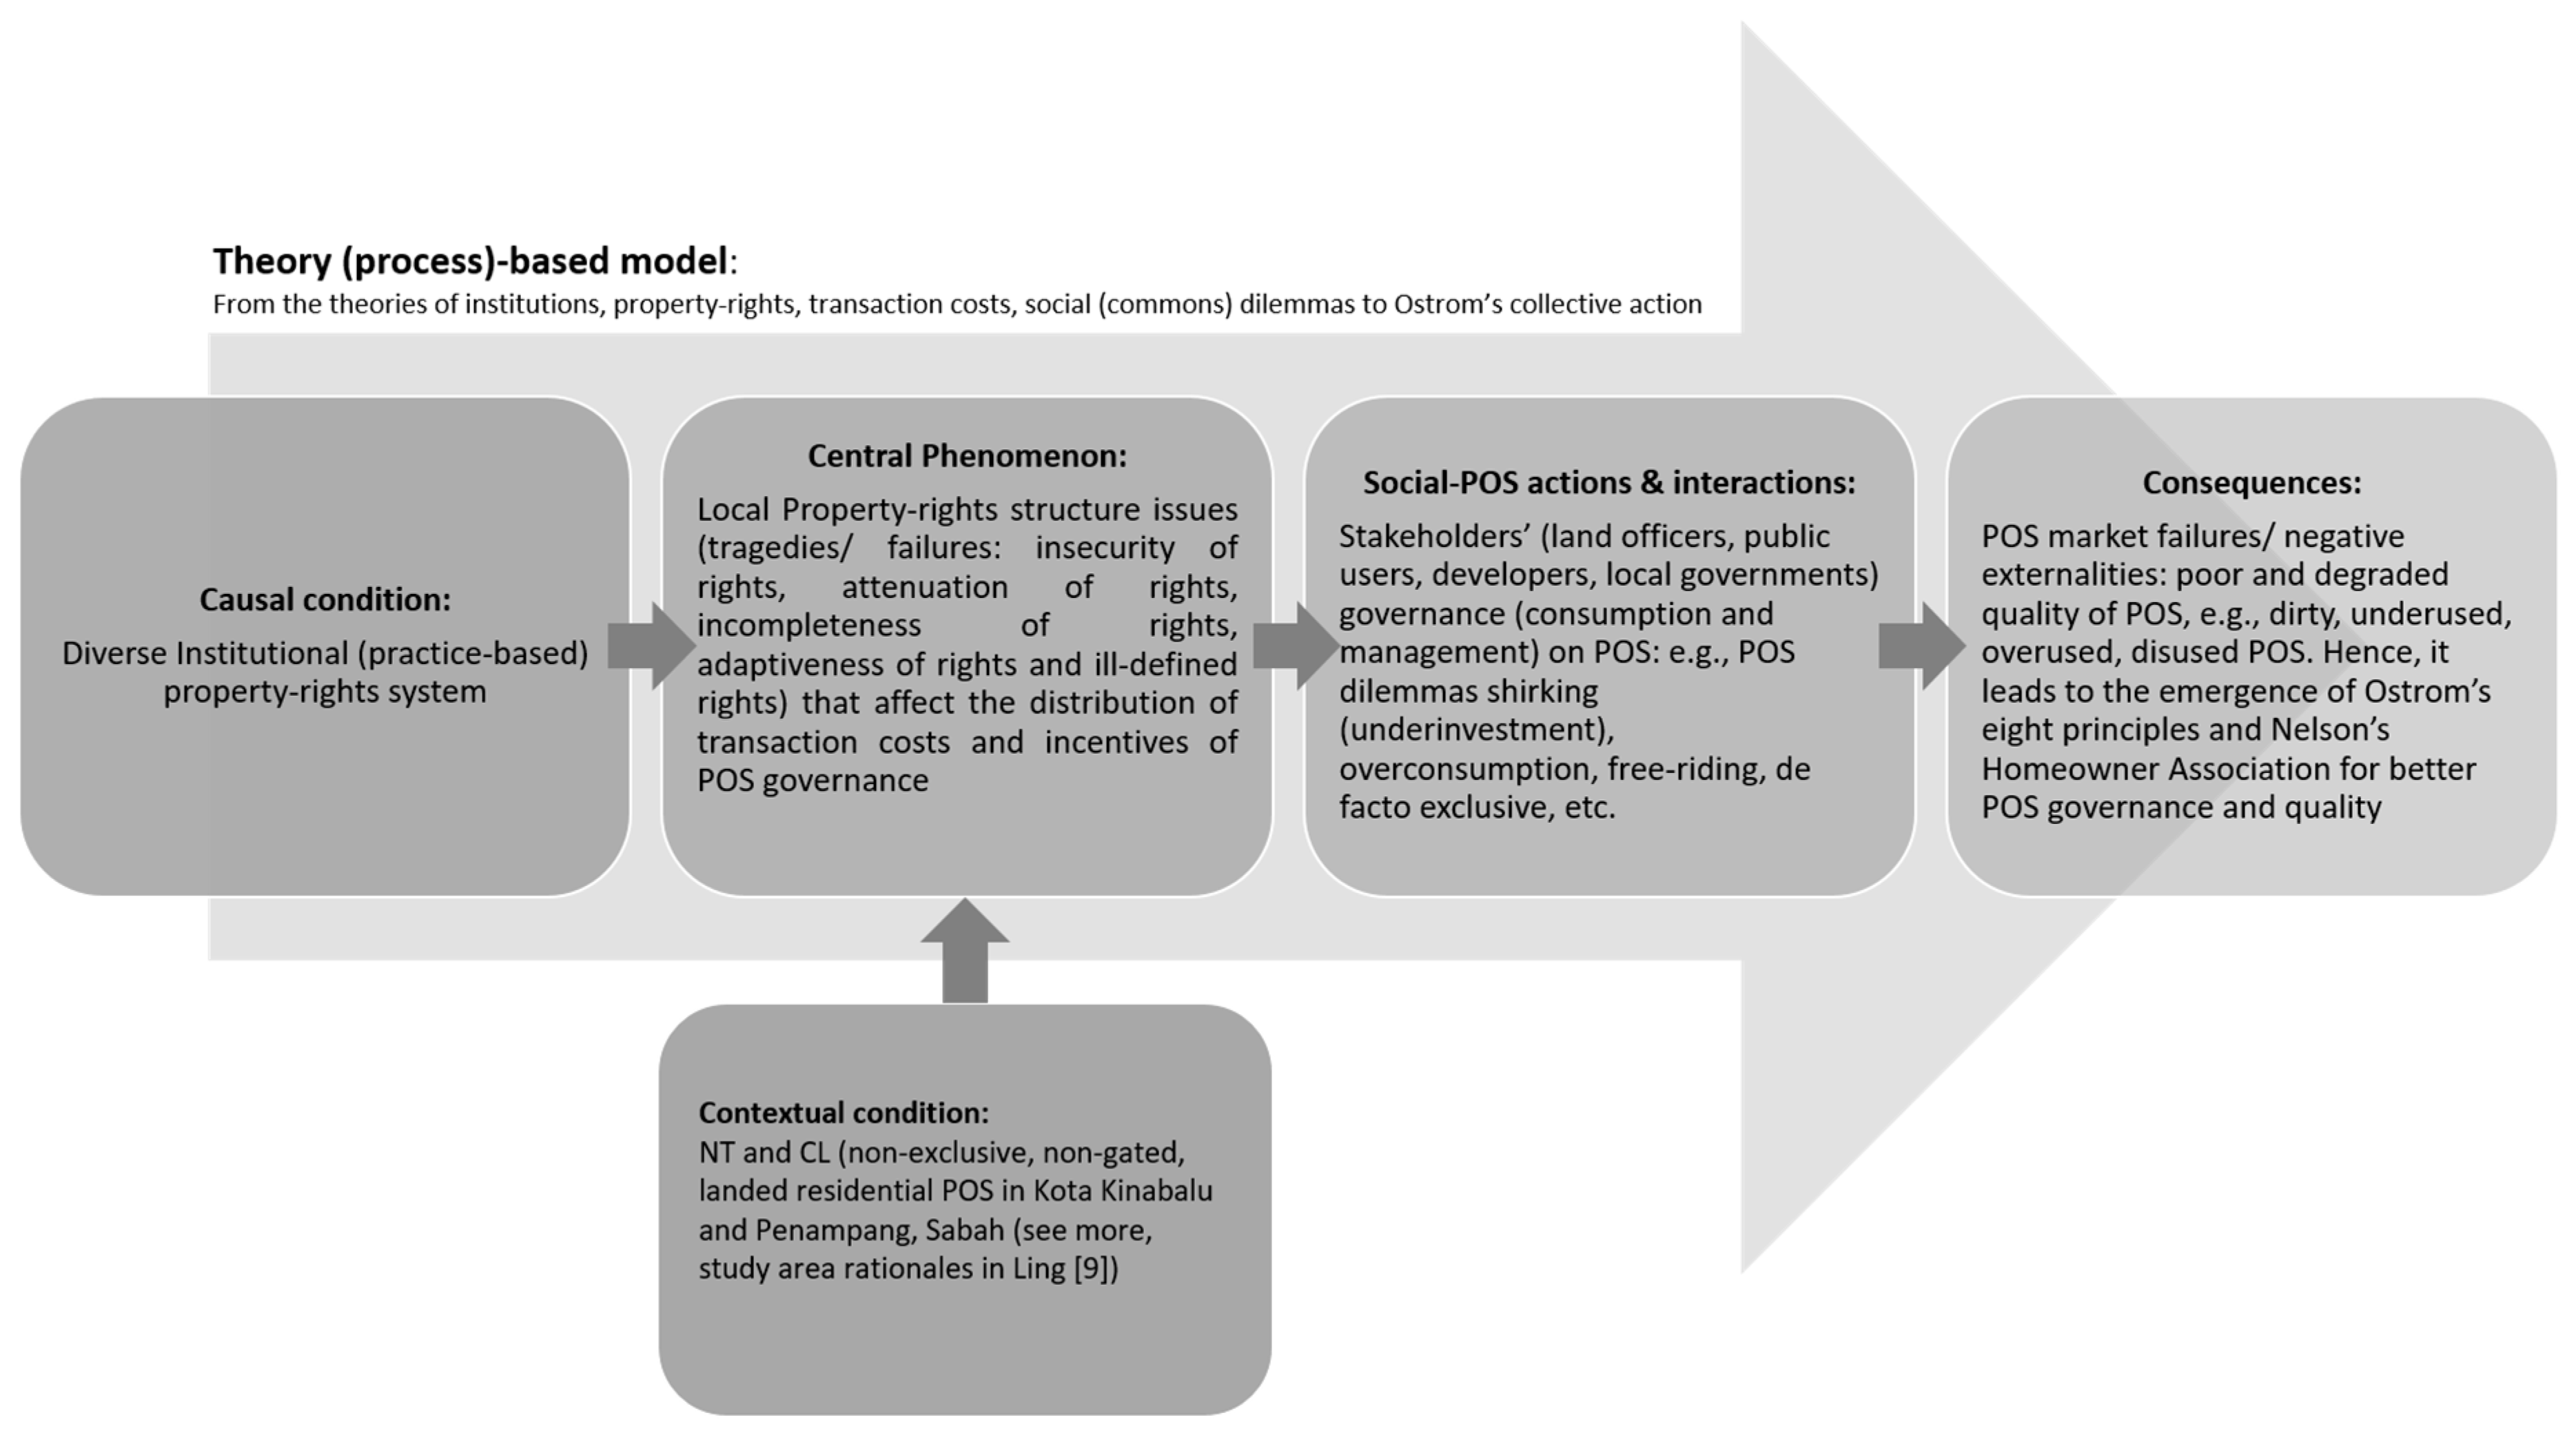 summary of a conceptual model of service quality and its implications for future research A conceptual model of service quality and its implications for future research this document is the first deliverable of the elearntn project: the conceptual framework for europe's future knowledge services in the form of a domain description, where possible expressed in uml notation.